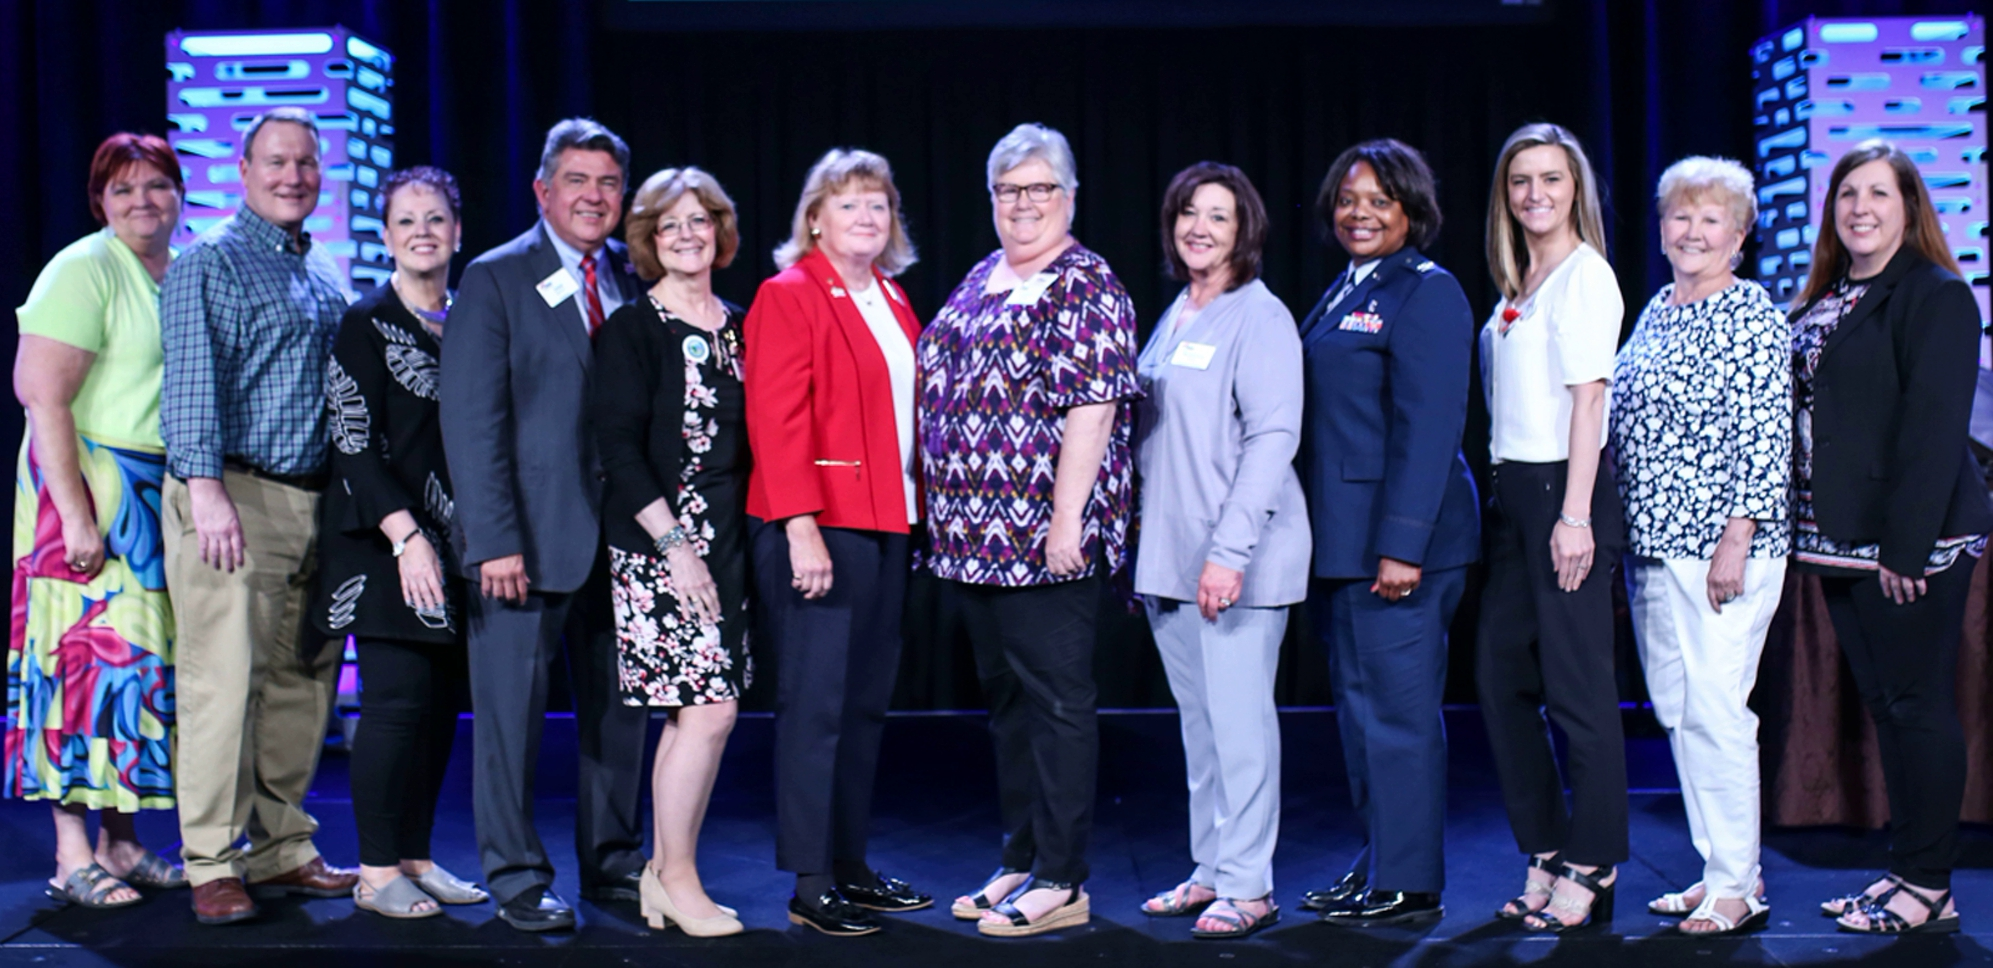 - The CMSA Foundation Board with members from 2018-2020.